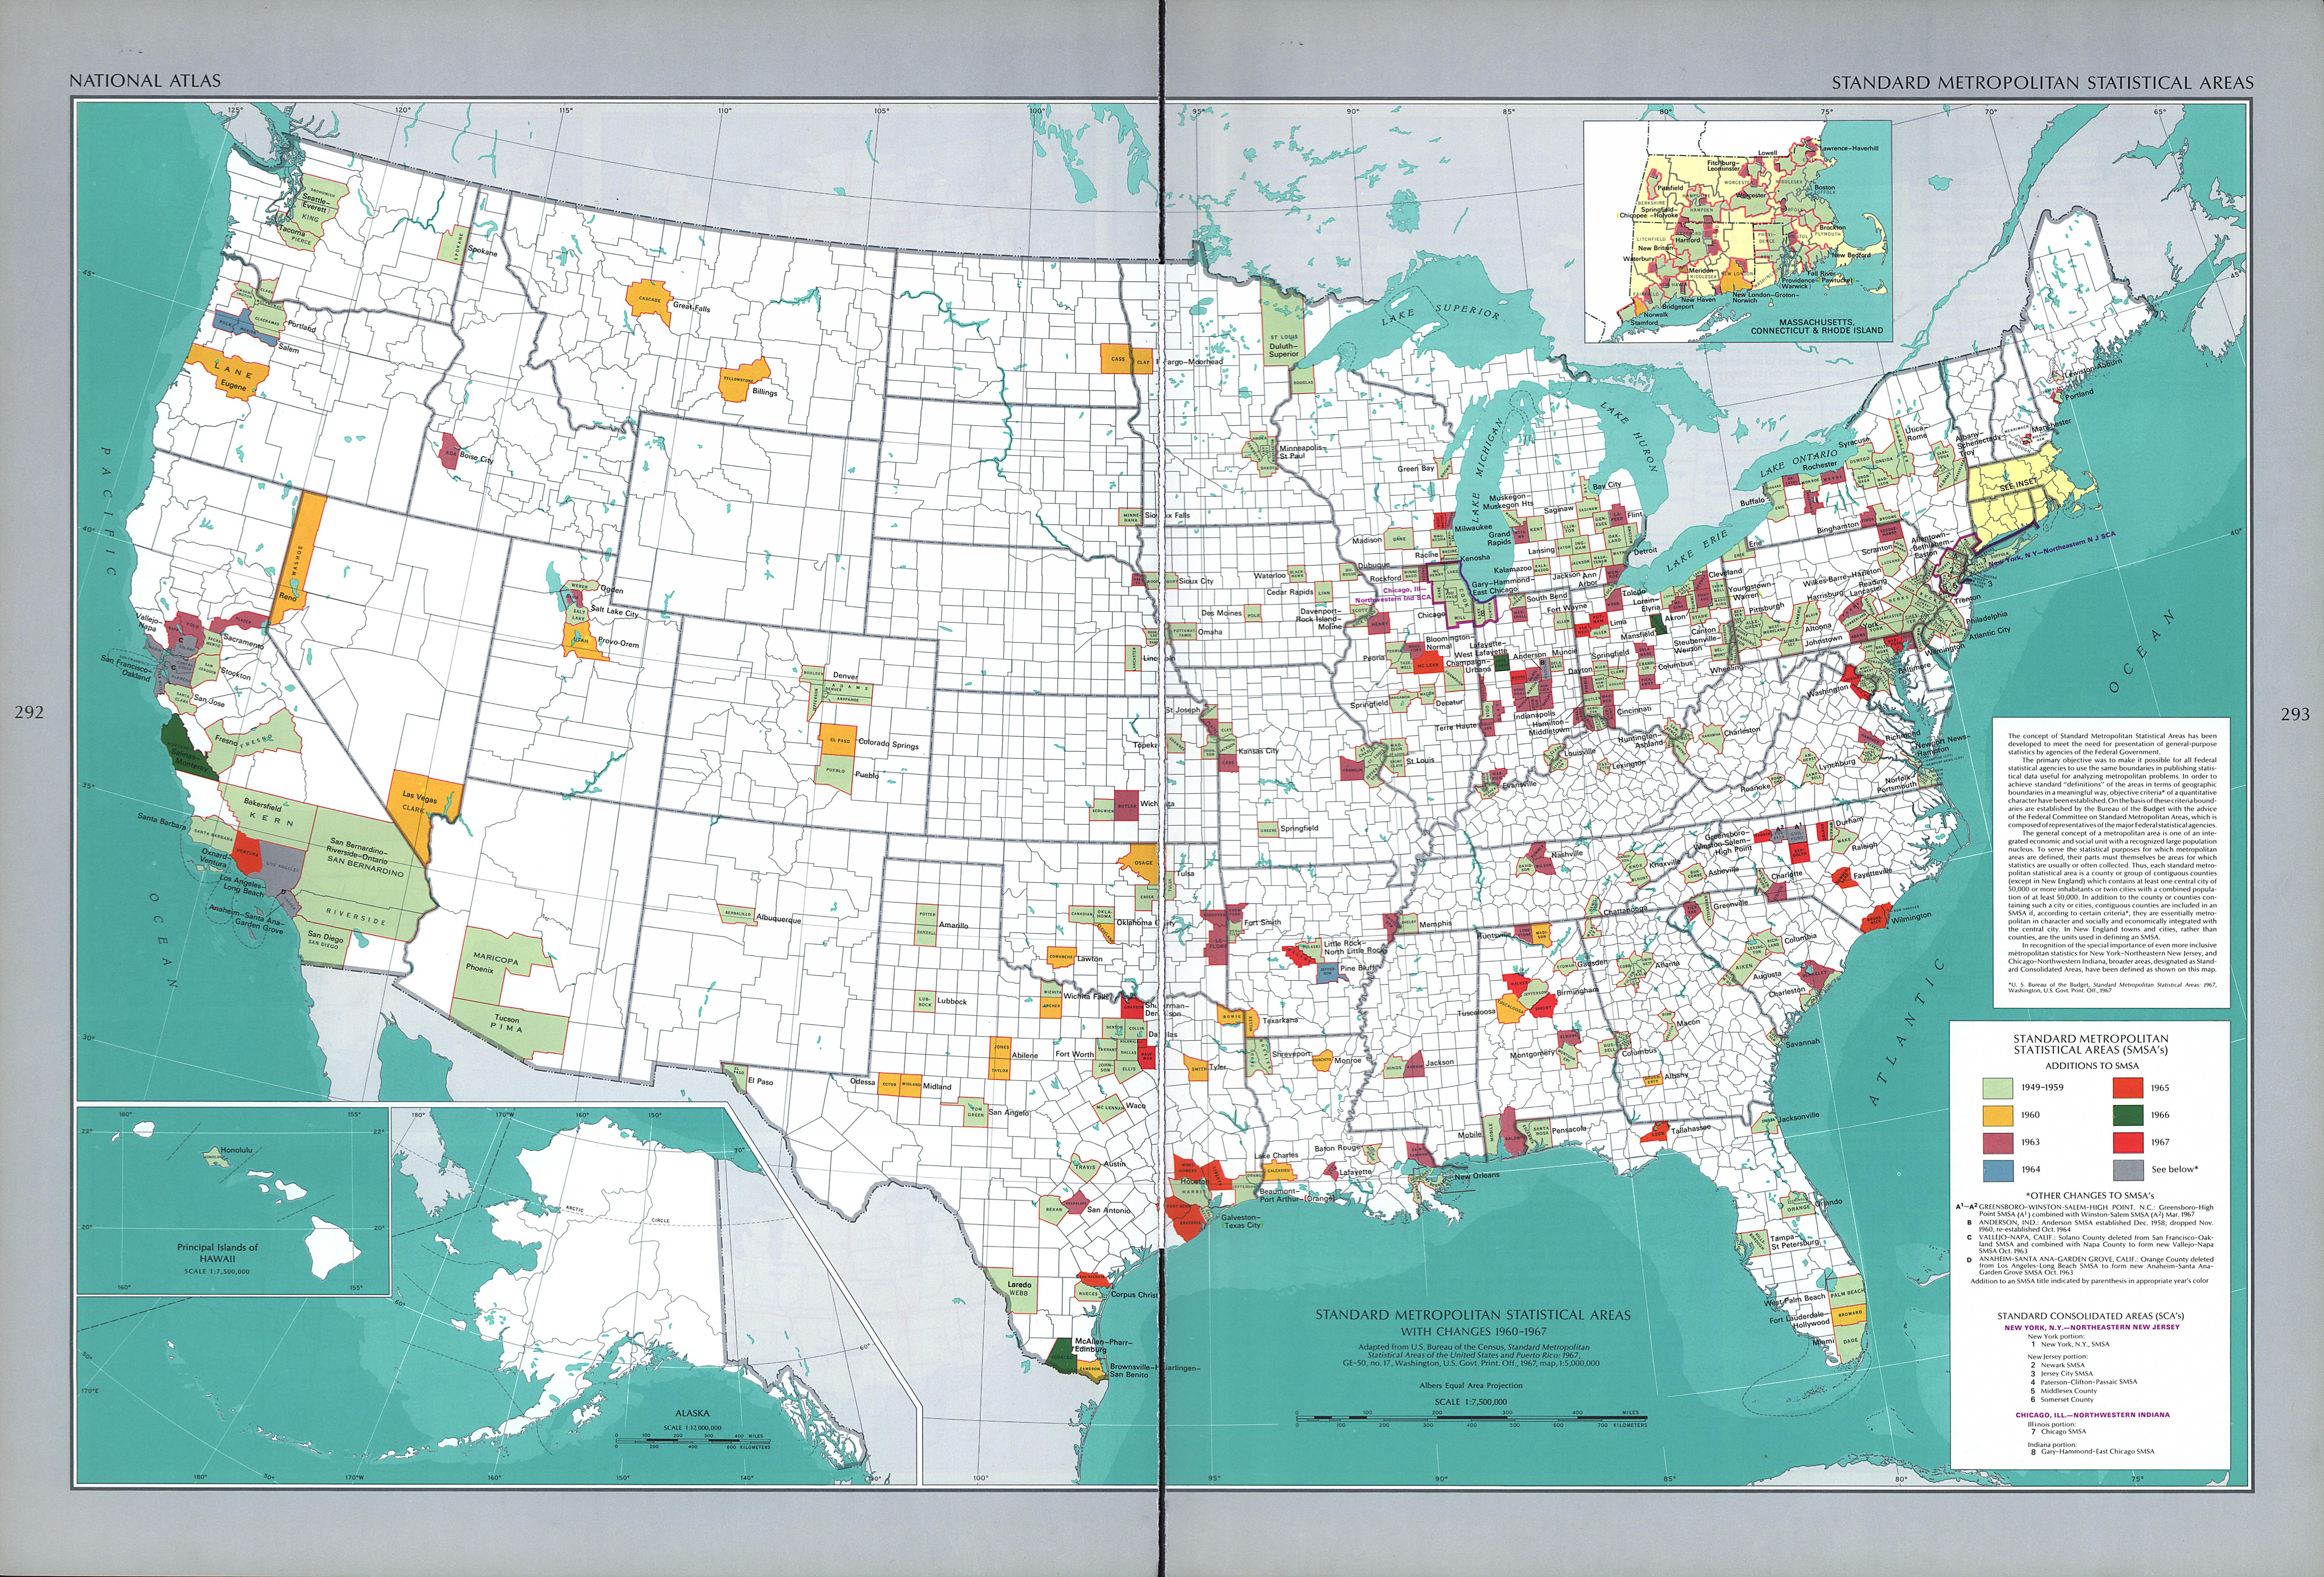 United States Standard Metropolitan Statistical Areas Map